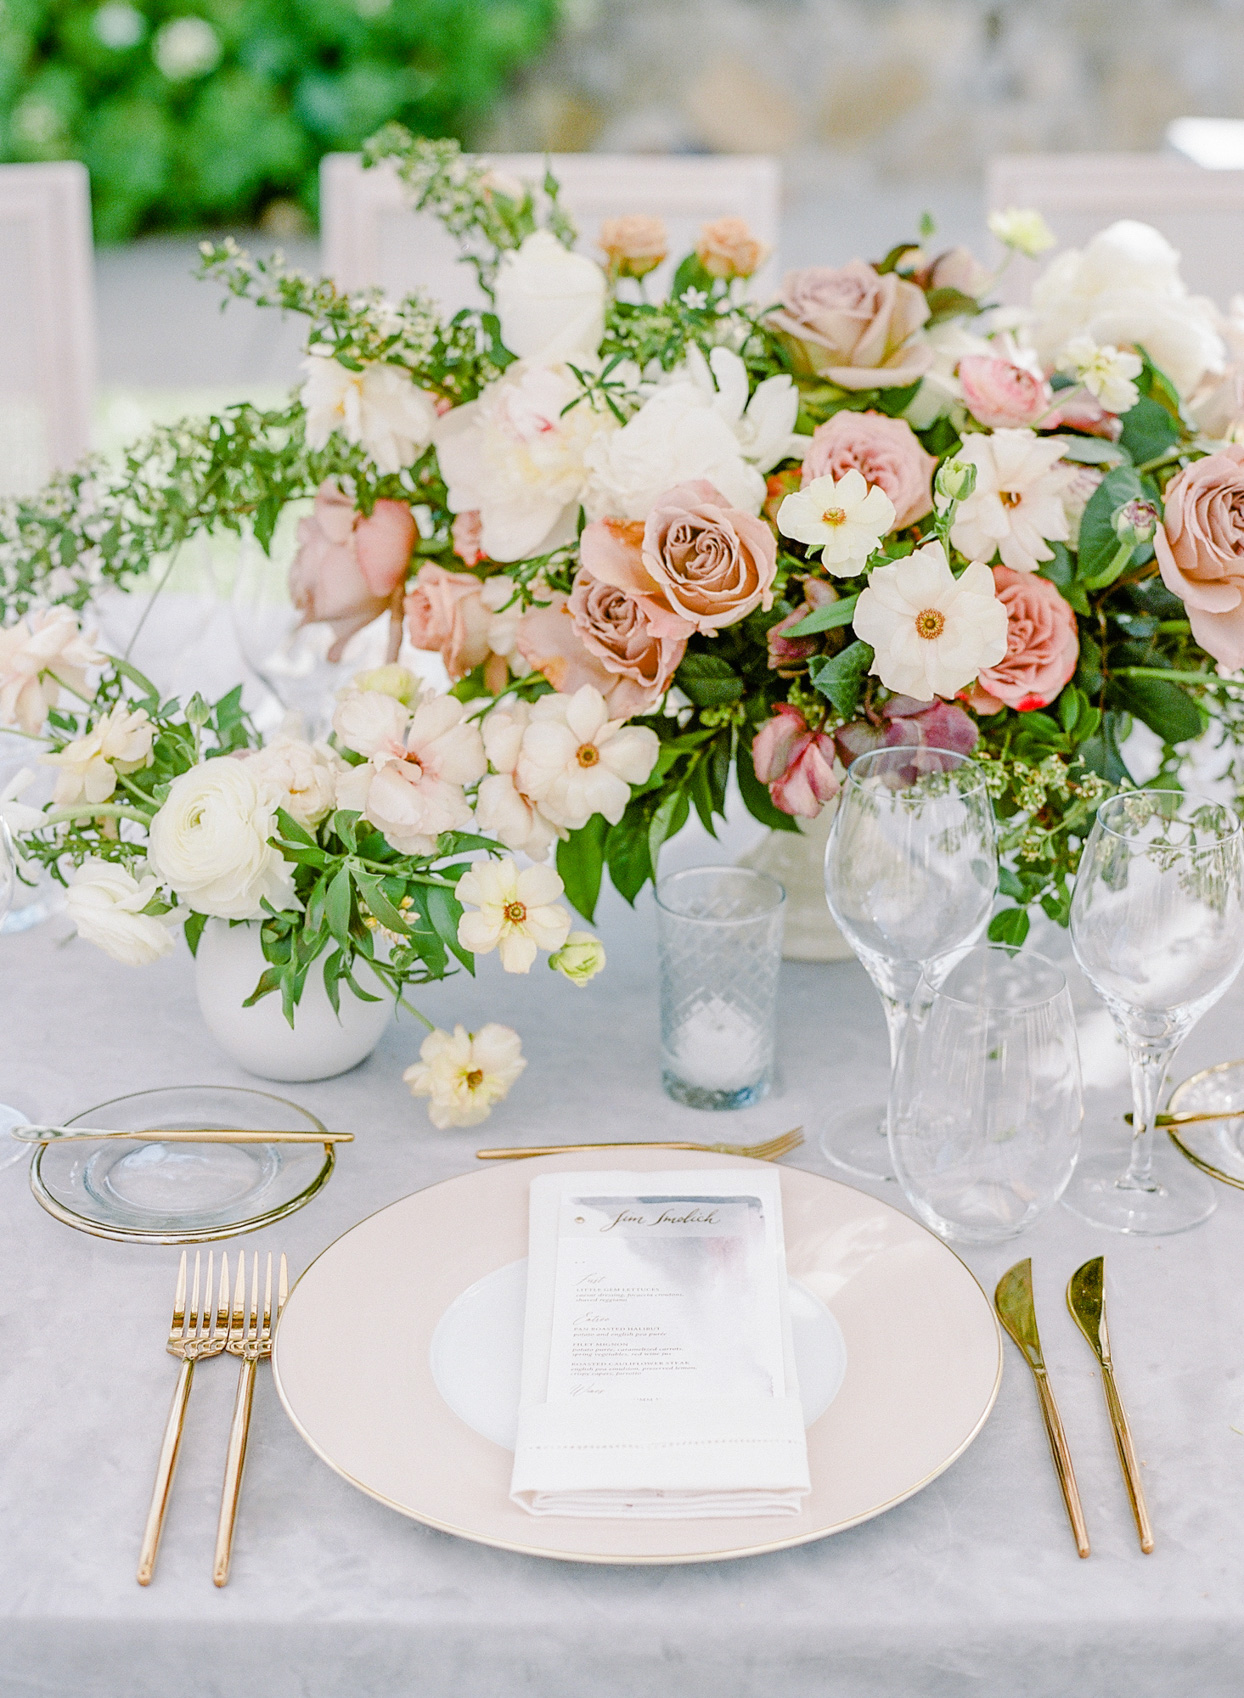 reception table setting with blush pink plate and gold utensils